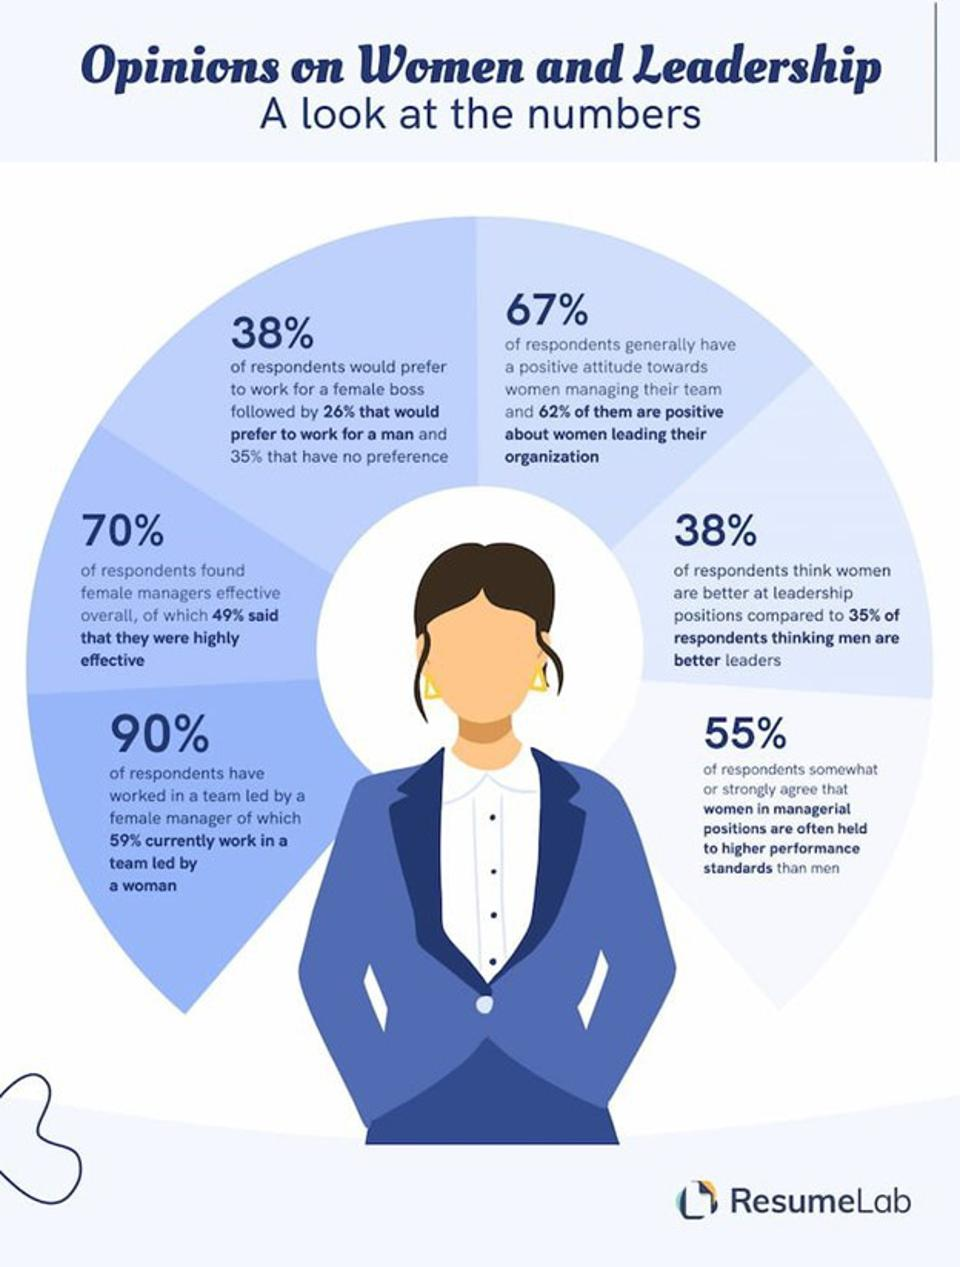 Opinions of Women in Leadership - a look at the numbers